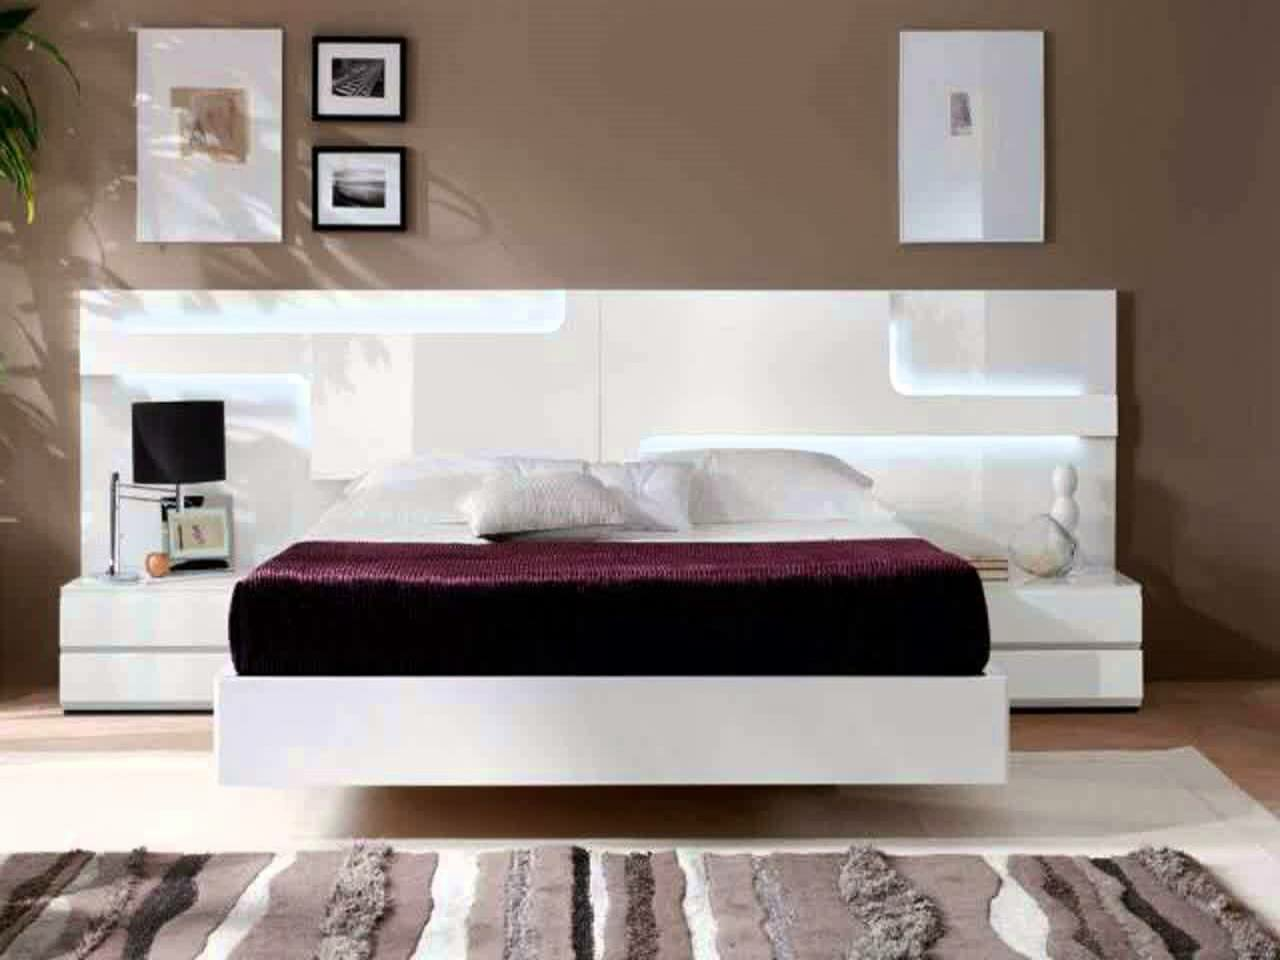 Bedroom Sets On Craigslist bedroom: craigslist bedroom sets for elegant bedroom furniture